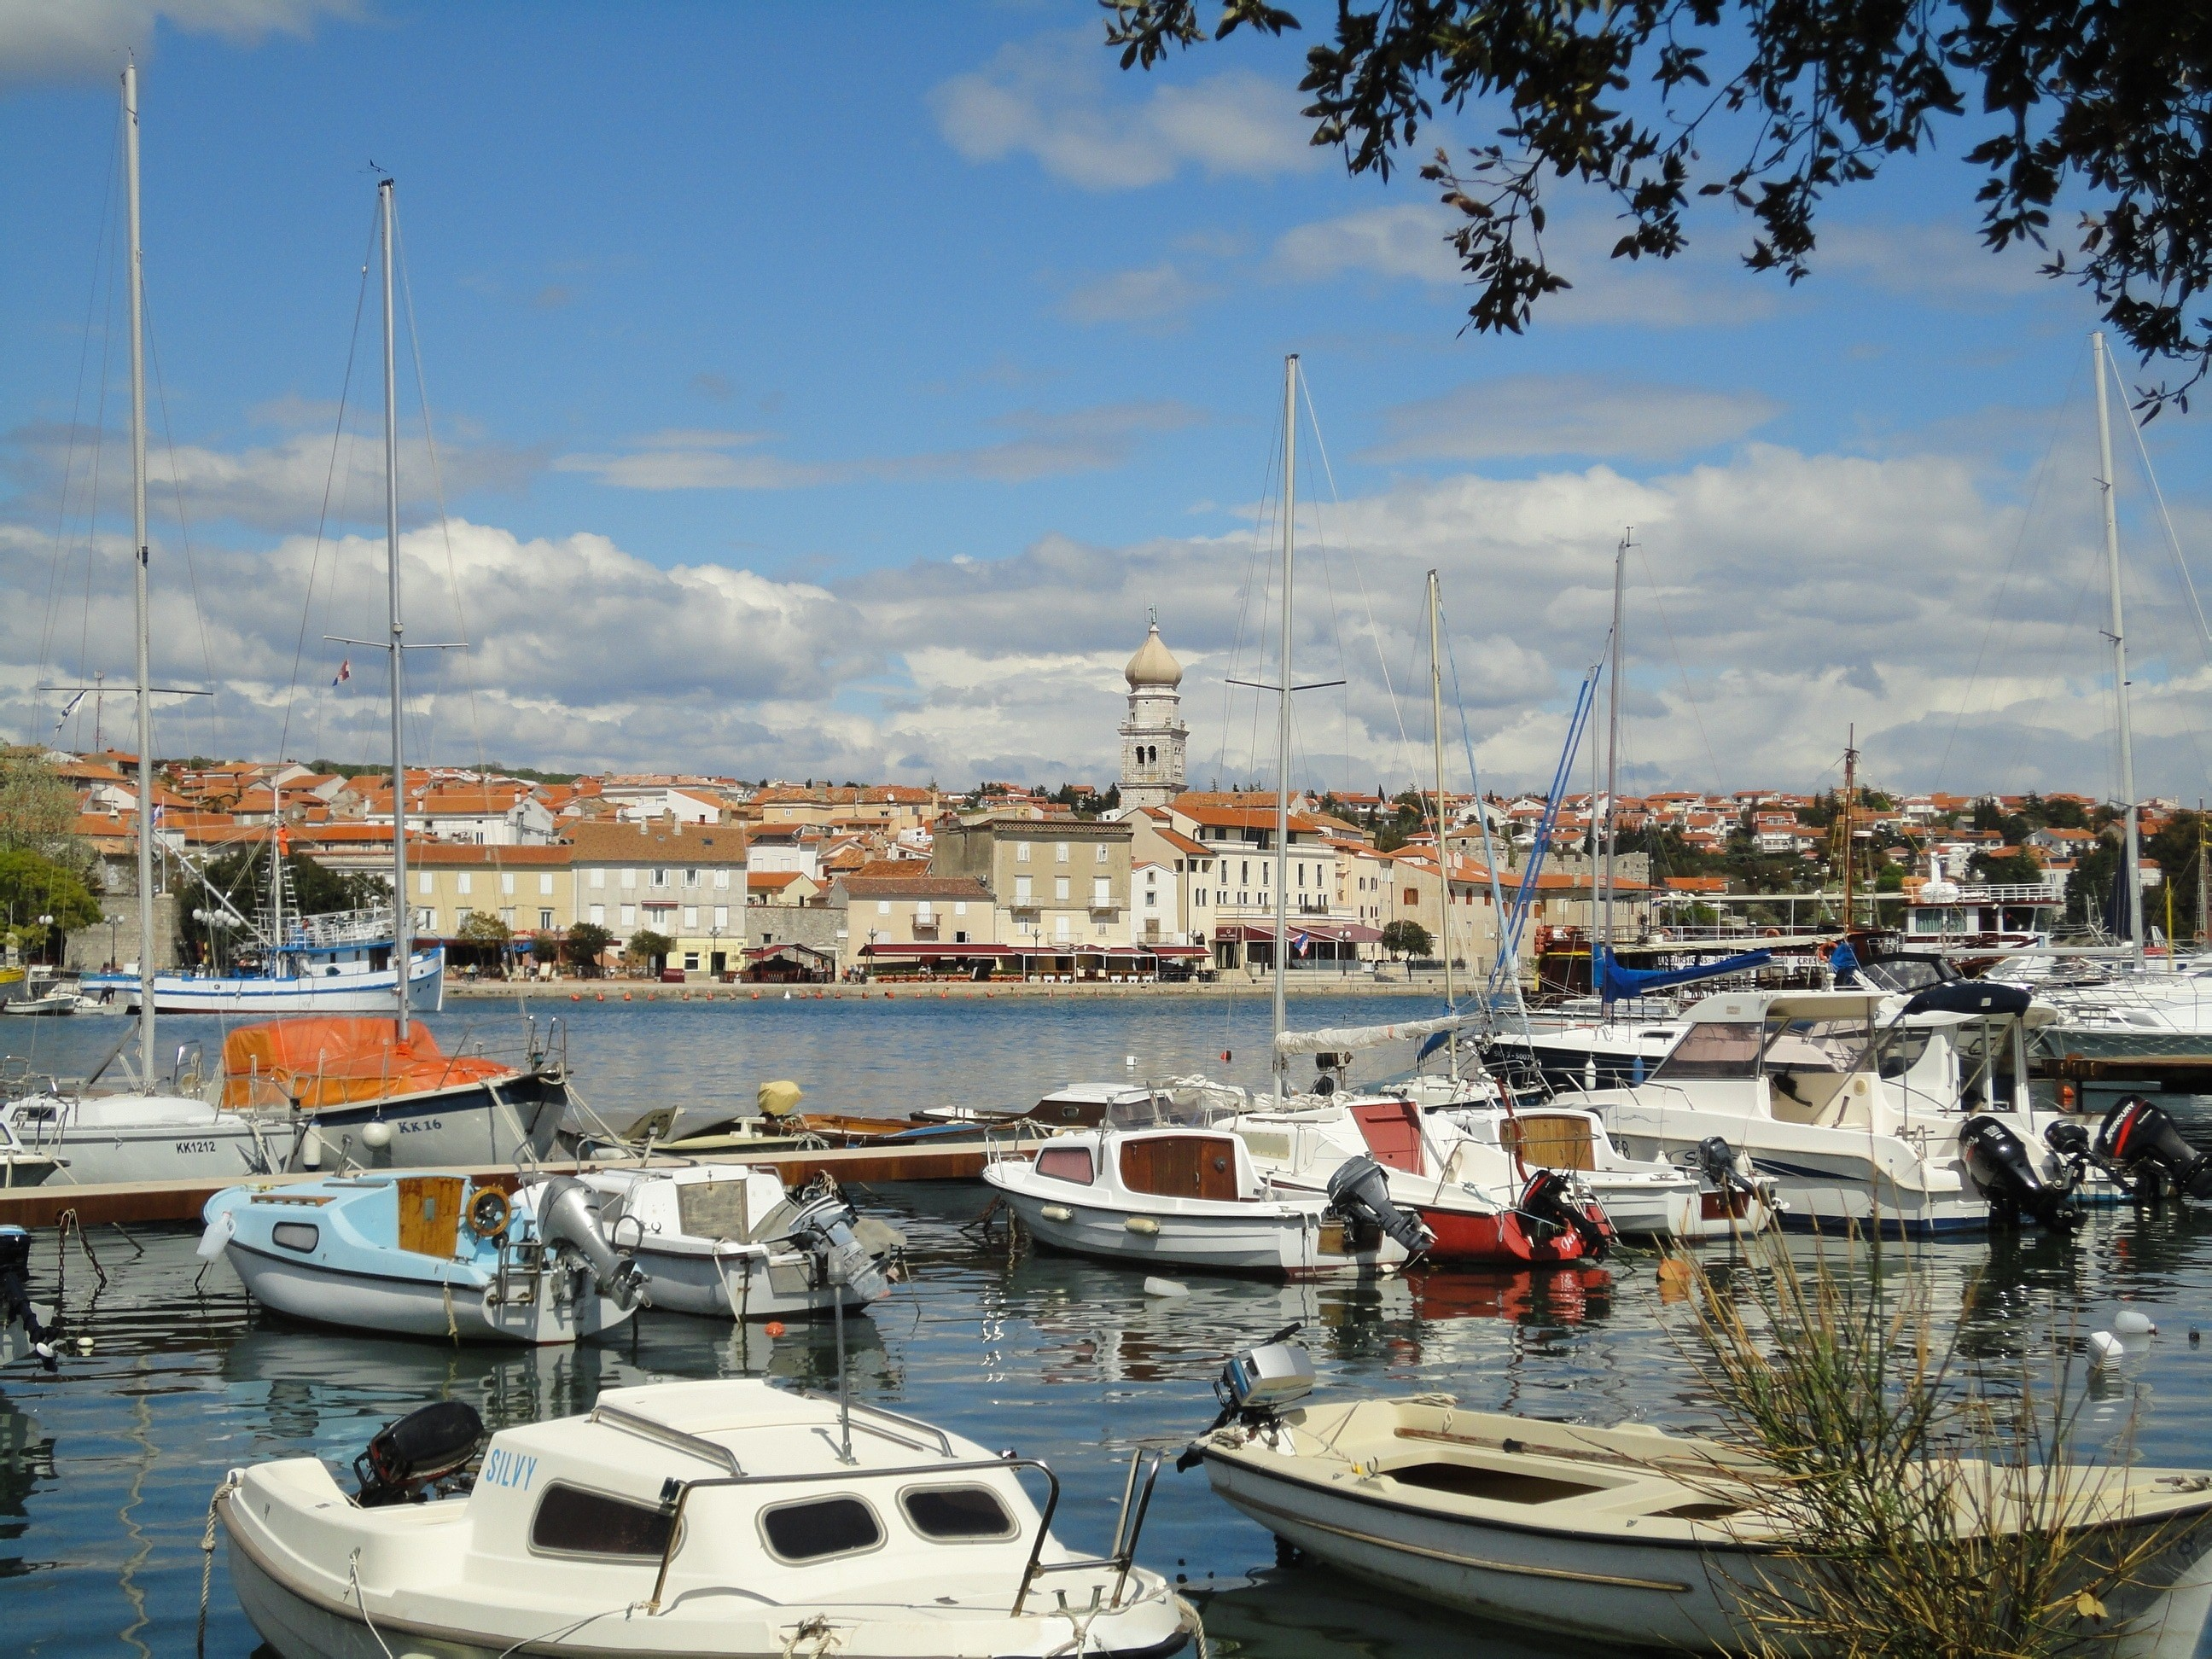 Res: 2592x1944, Port City, Croatia, Island Of Krk, nautical vessel, harbor